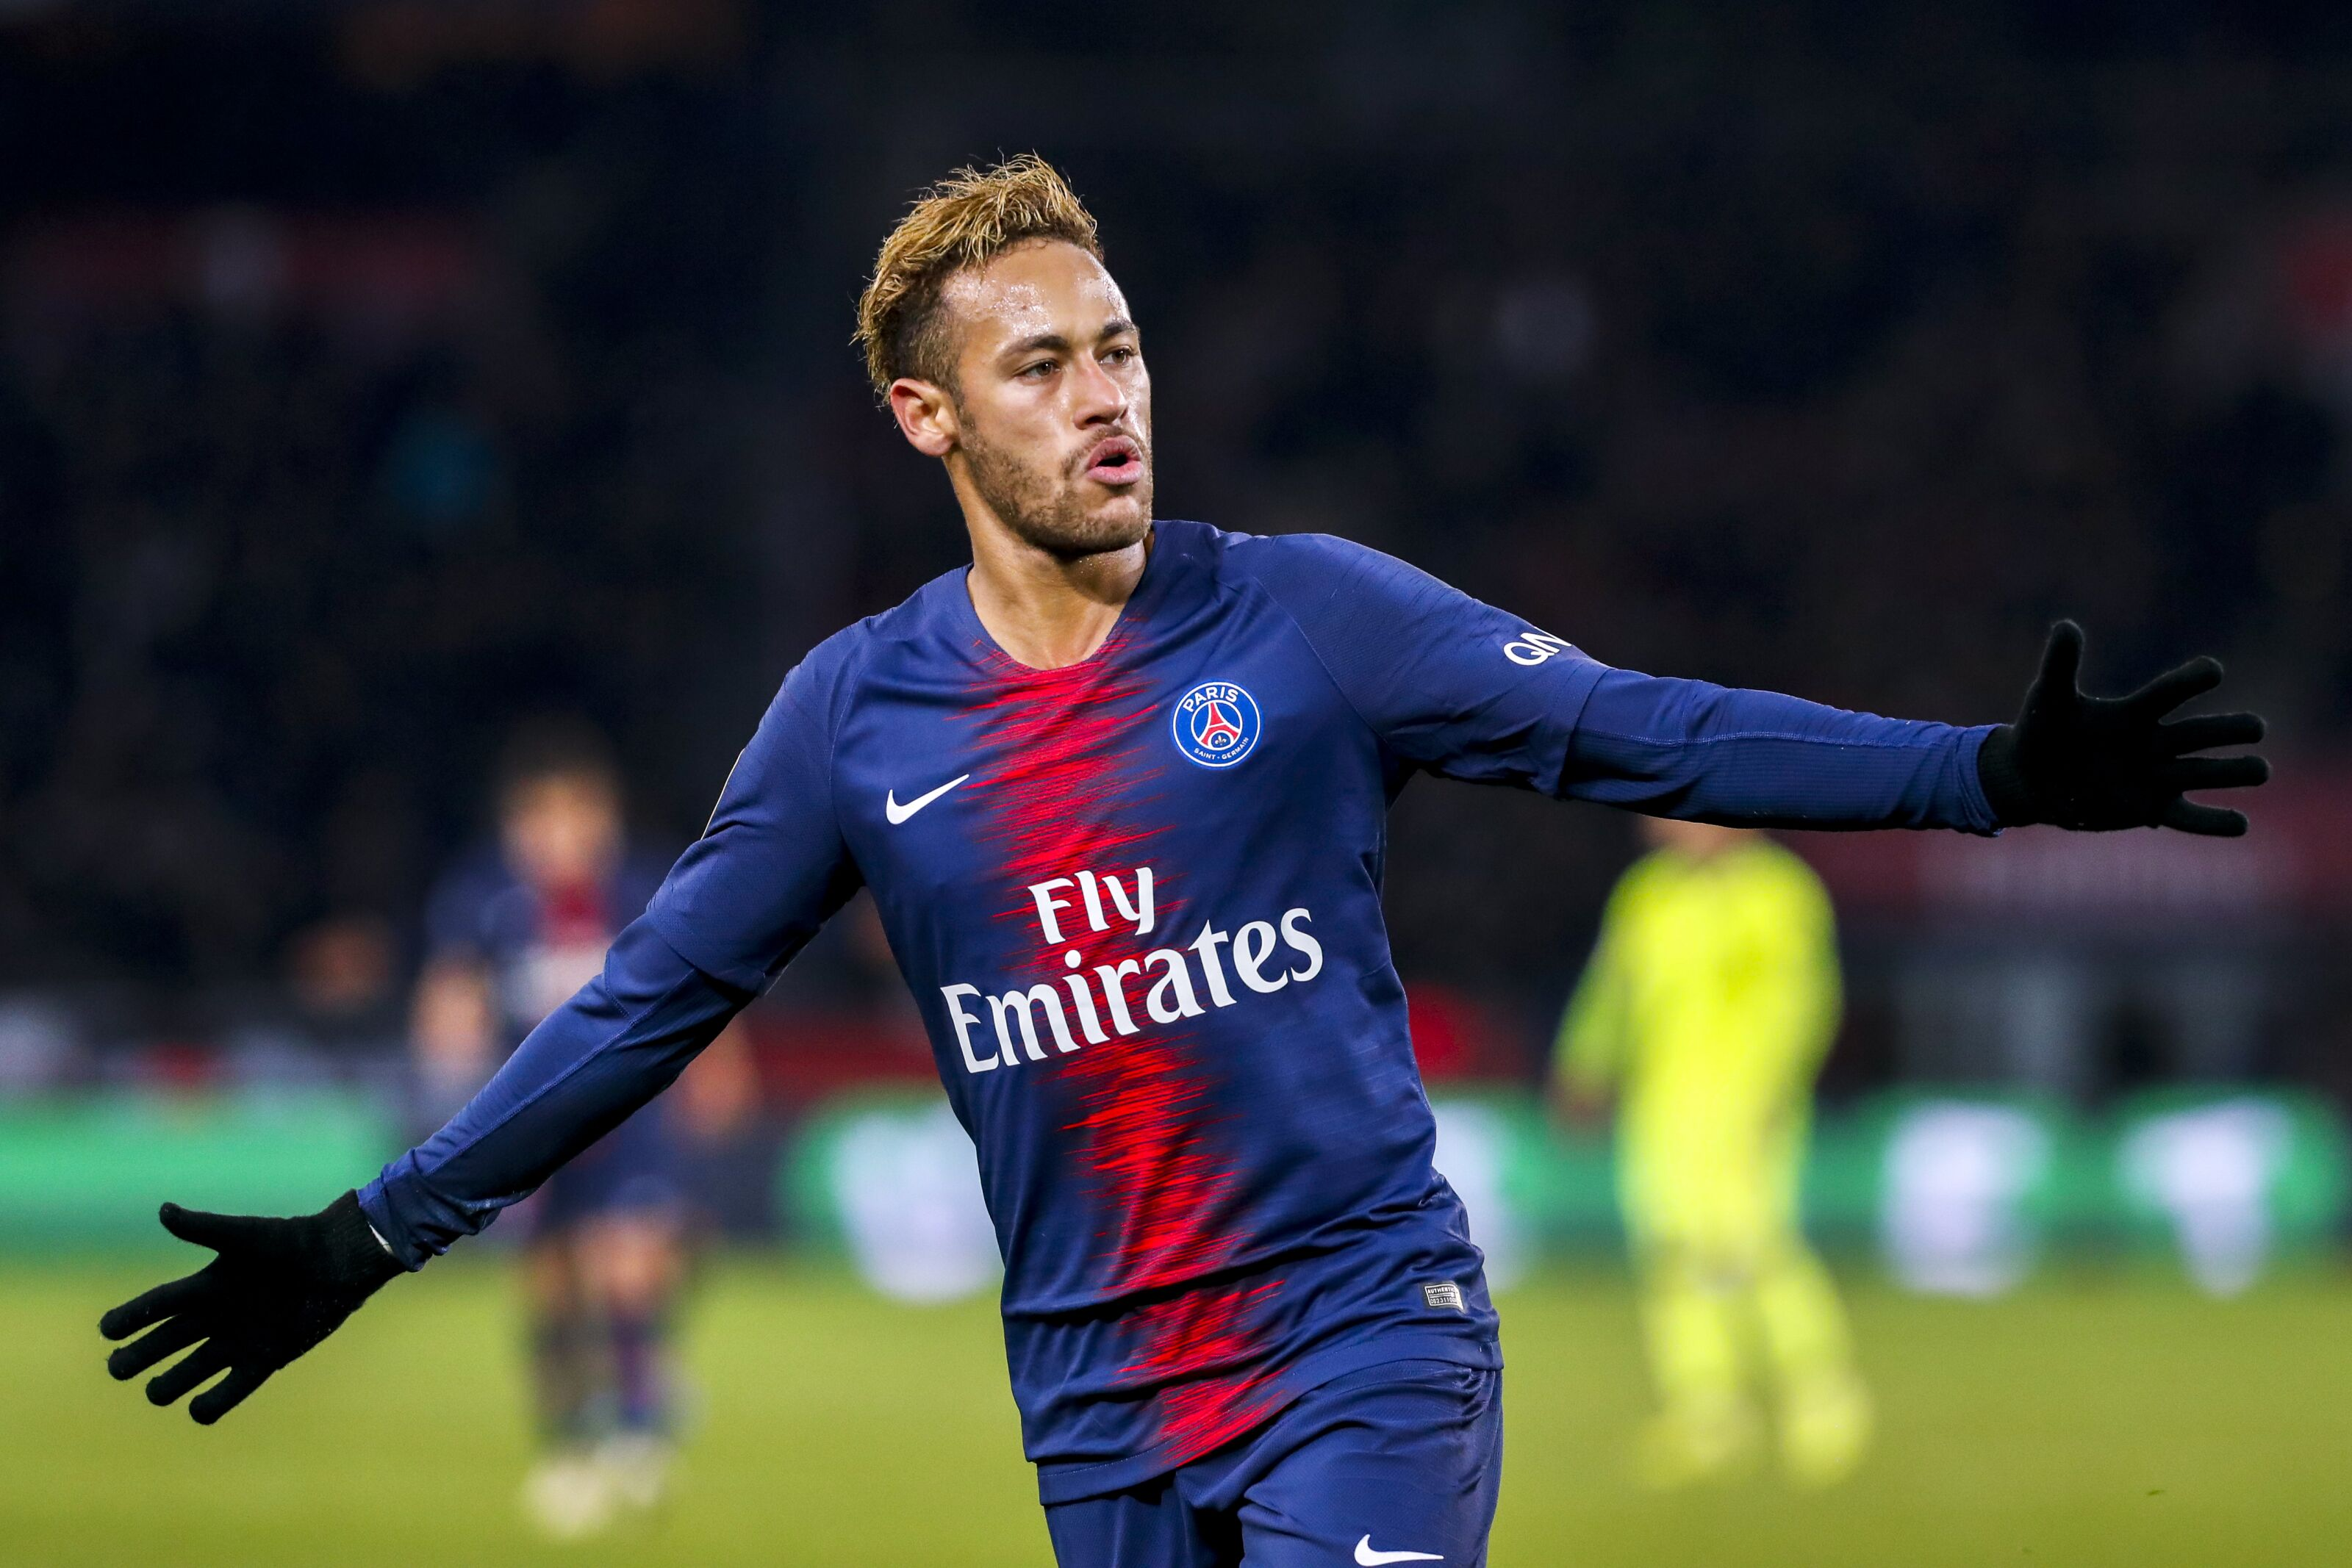 8e414c3babd Neymar will have to satisfy 2 conditions to return to Barcelona